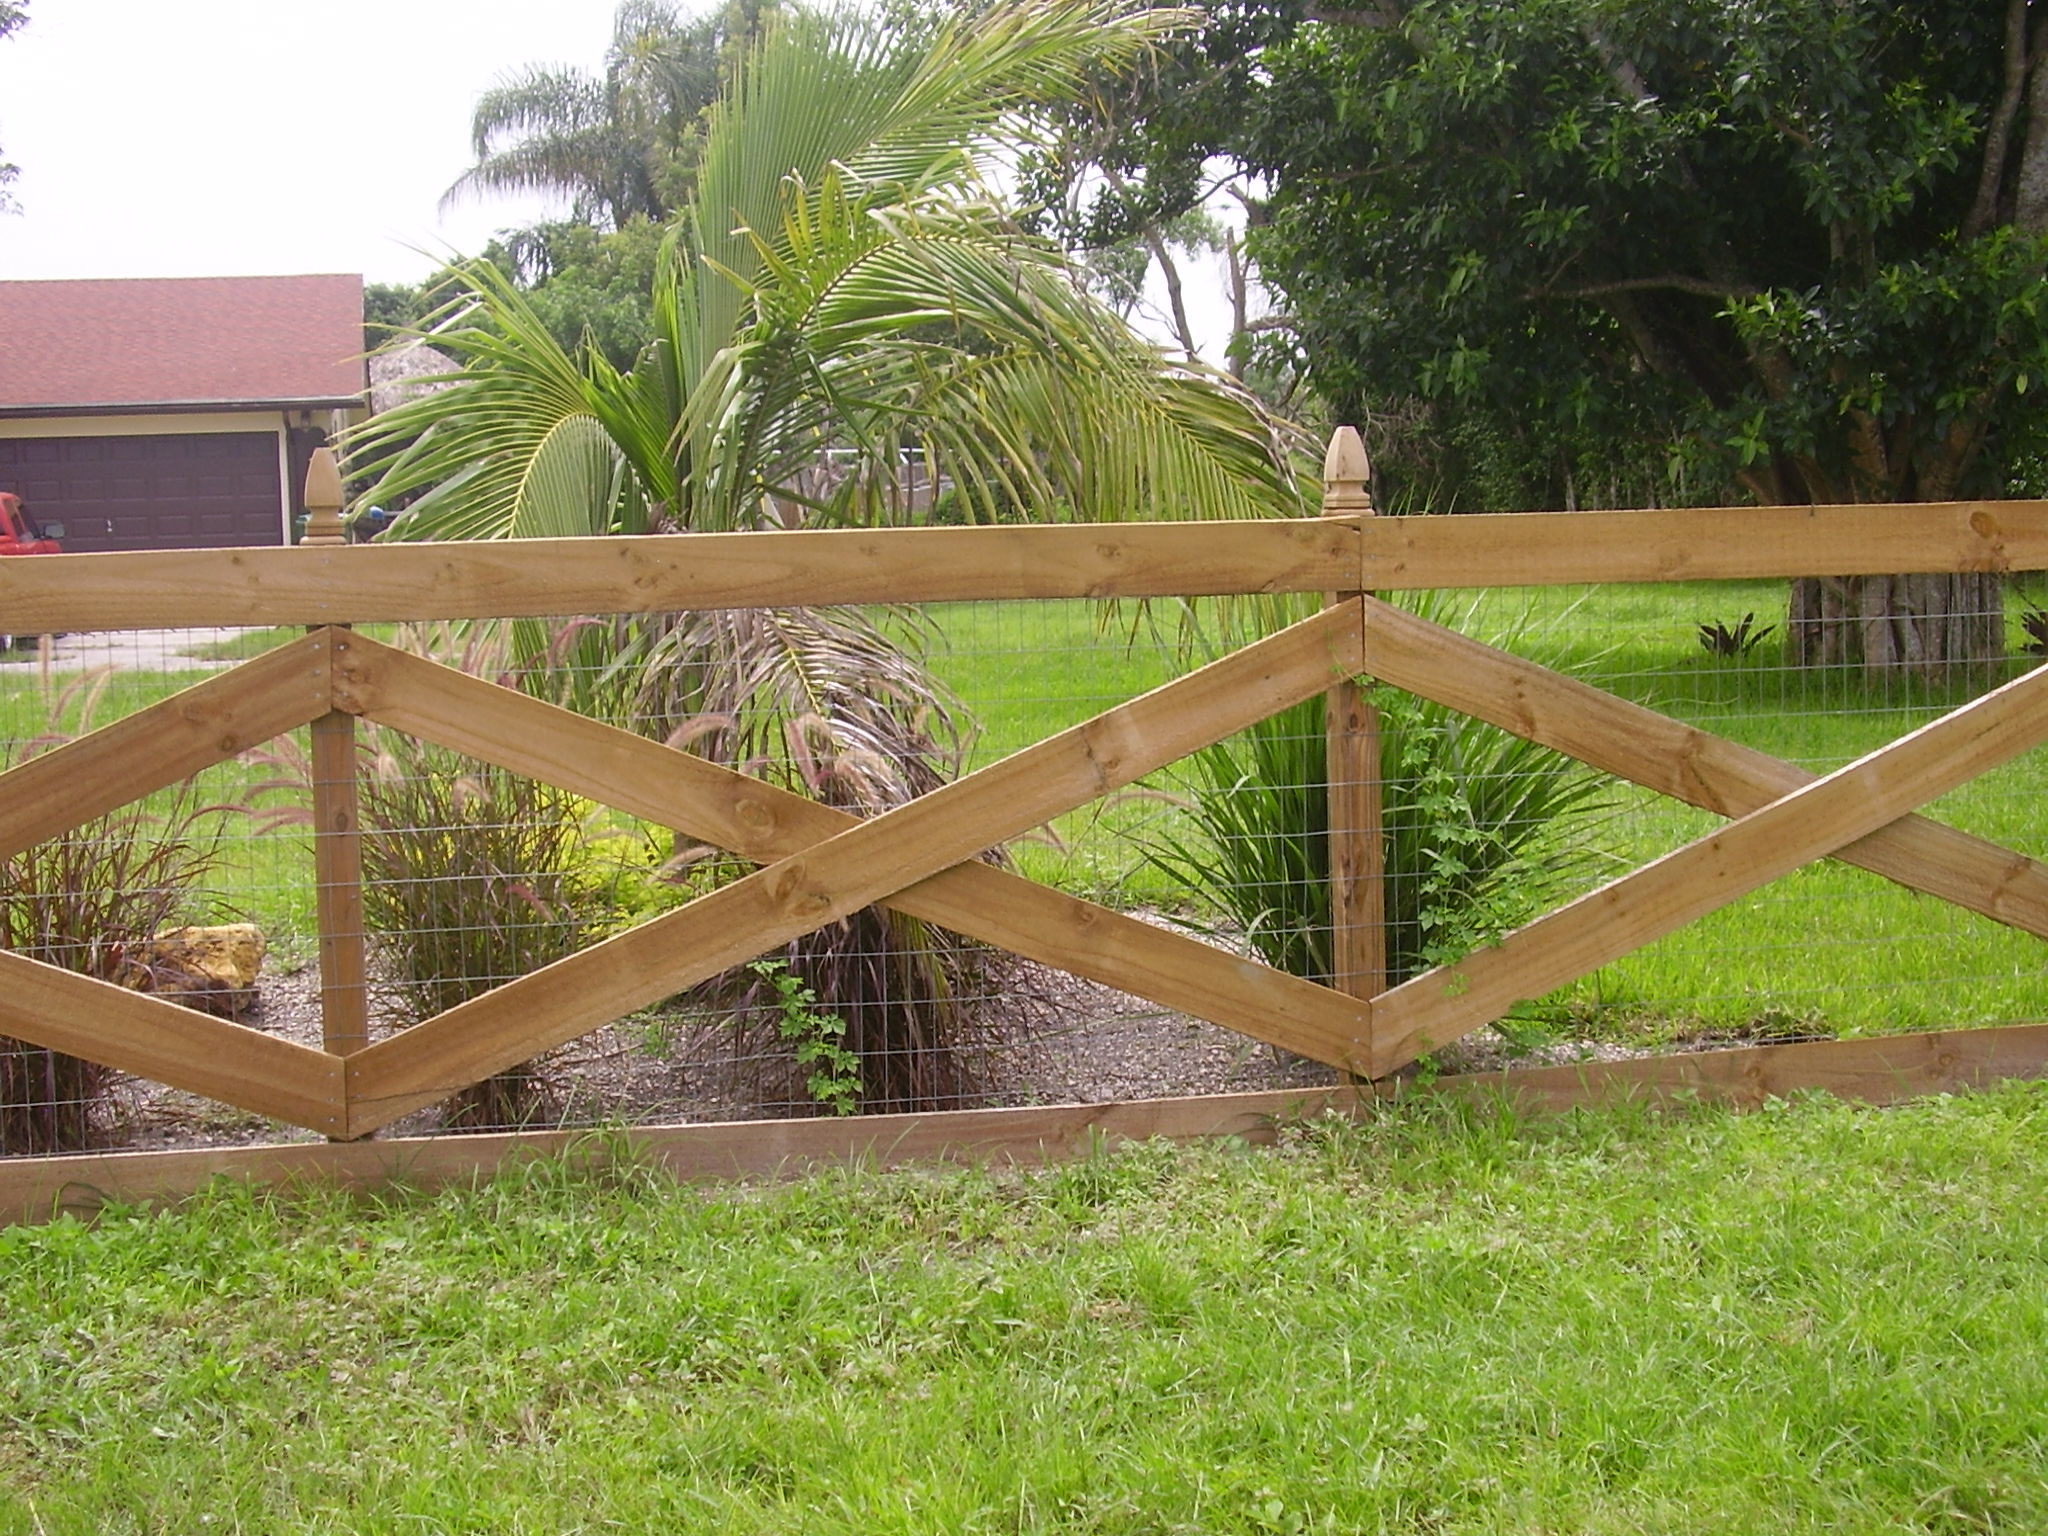 Best ideas about Cheap Fence DIY . Save or Pin Cheap Easy Dog Fence With 3 Popular Dog Fence Options Now.